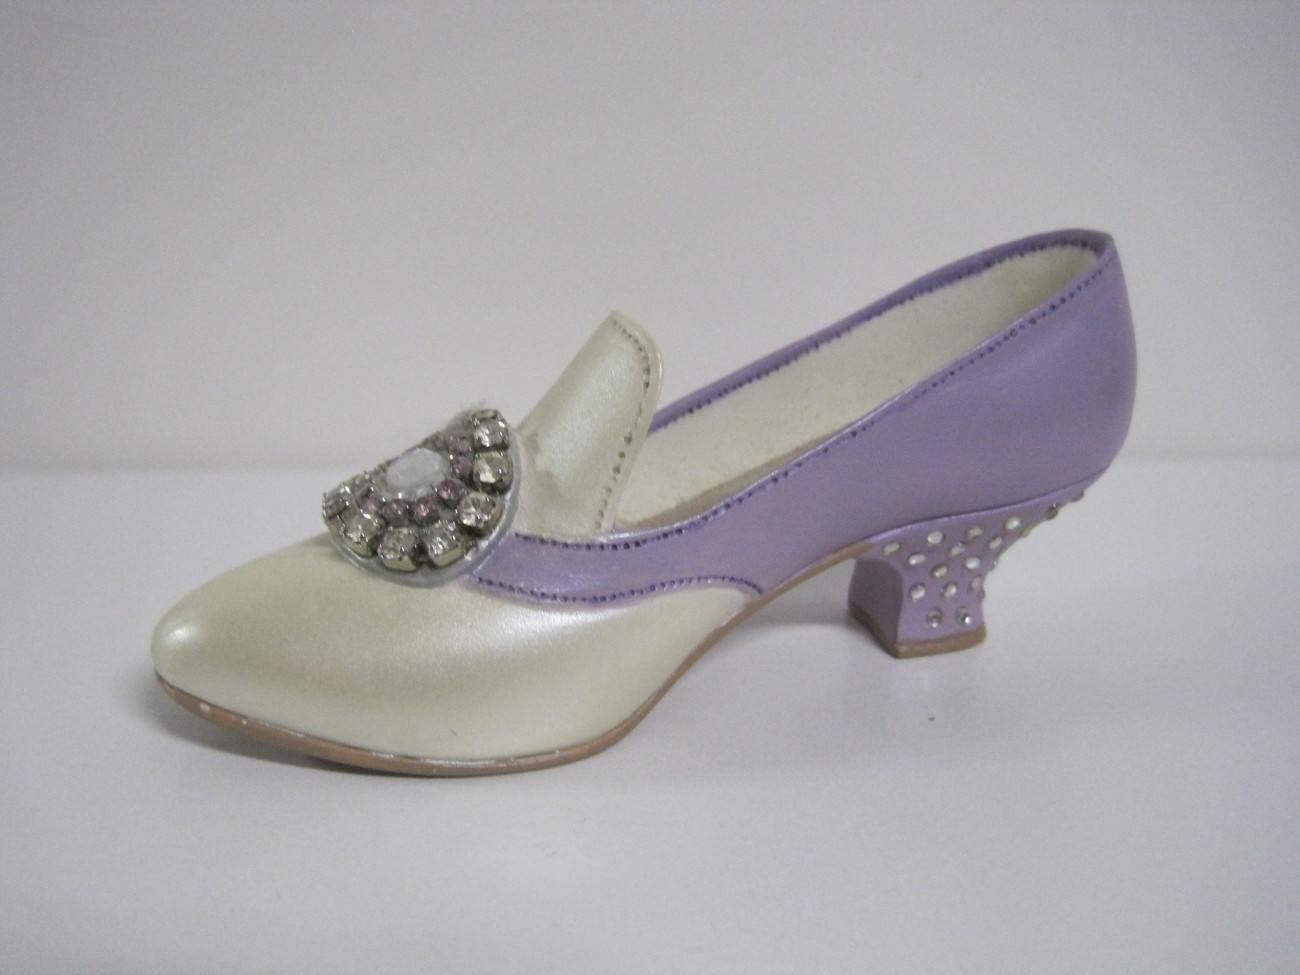 Raine & Willitts Just the Right Shoe 1998 Jeweled Heel Pump with Box